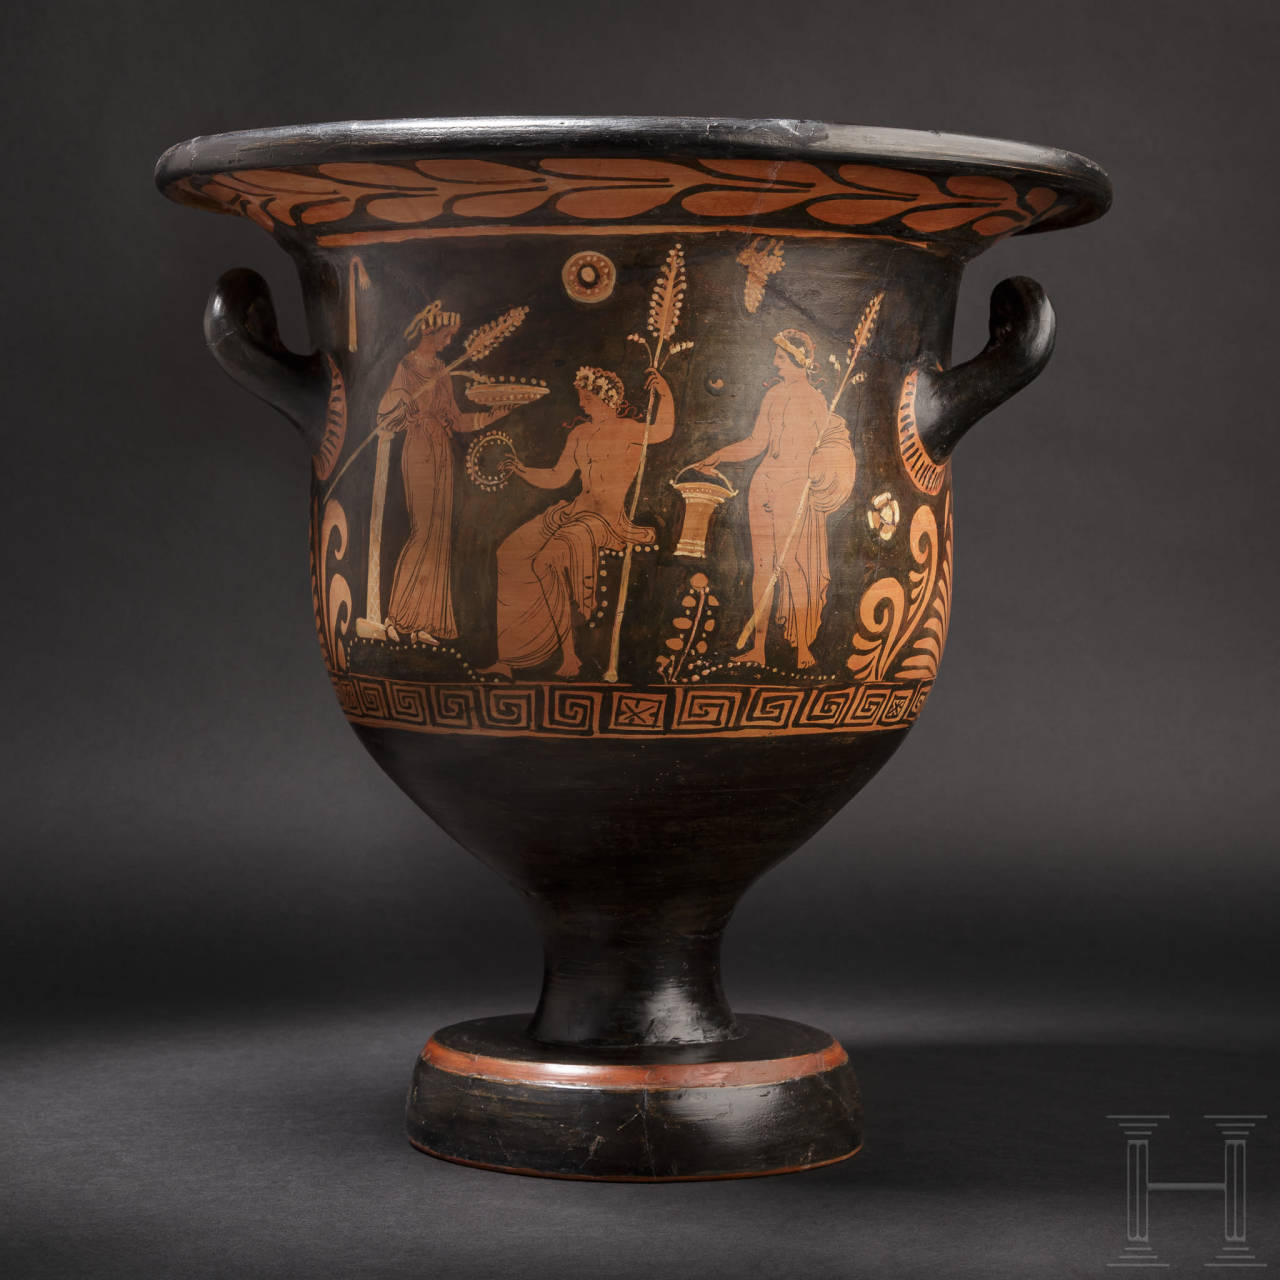 A Lower Italian large, red-figured krater, Apulia, 5th century B.C.